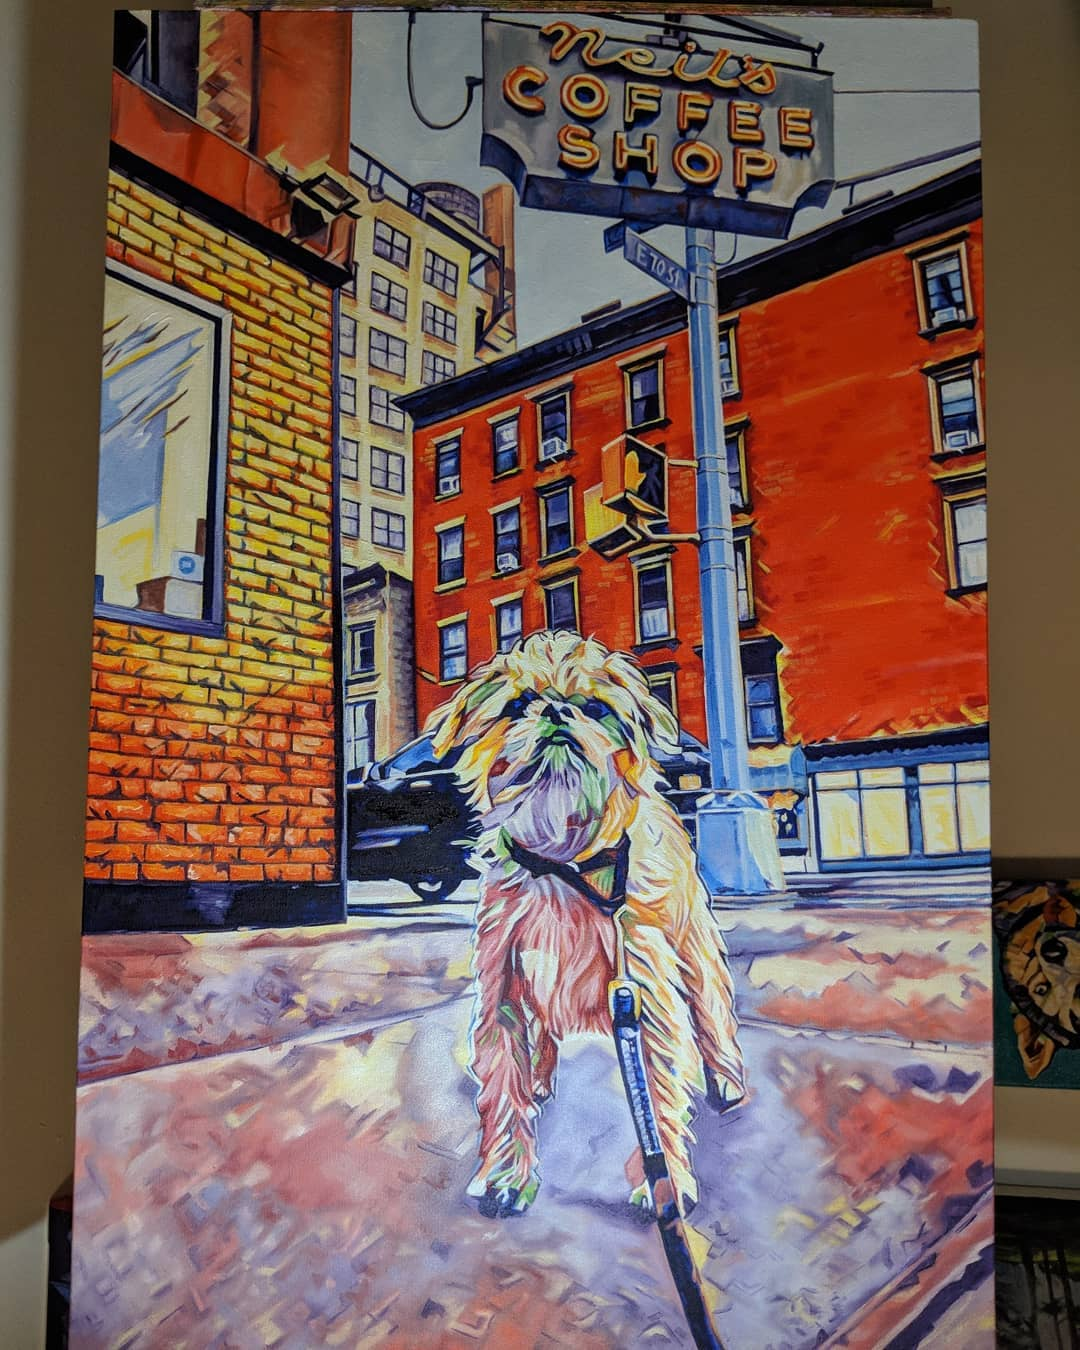 Pop Art Pet Portrait Wilmer 24in x 36in x 1.375in Oil over Acrylic  Via a photo I took of Wilmer in front of Neil's Coffee Shop in Upper East Side near Hunter College.  I use high-quality heavyweight stretched canvases, and recreate your submitted image into a fun, bright new work of art using an acrylic base with oil paint top coats. My services usually take 3-6 weeks dependant on how busy I am and how may other projects I have to complete.  My Website: www.camerondixon.com  Purchase my work on my Etsy: www.etsy.com/shop/CameronDixonsArt  Follow me on Instagram: https://www.instagram.com/cameron_dixons_art/  Follow me on Facebook: https://www.facebook.com/cameron.dixon.art